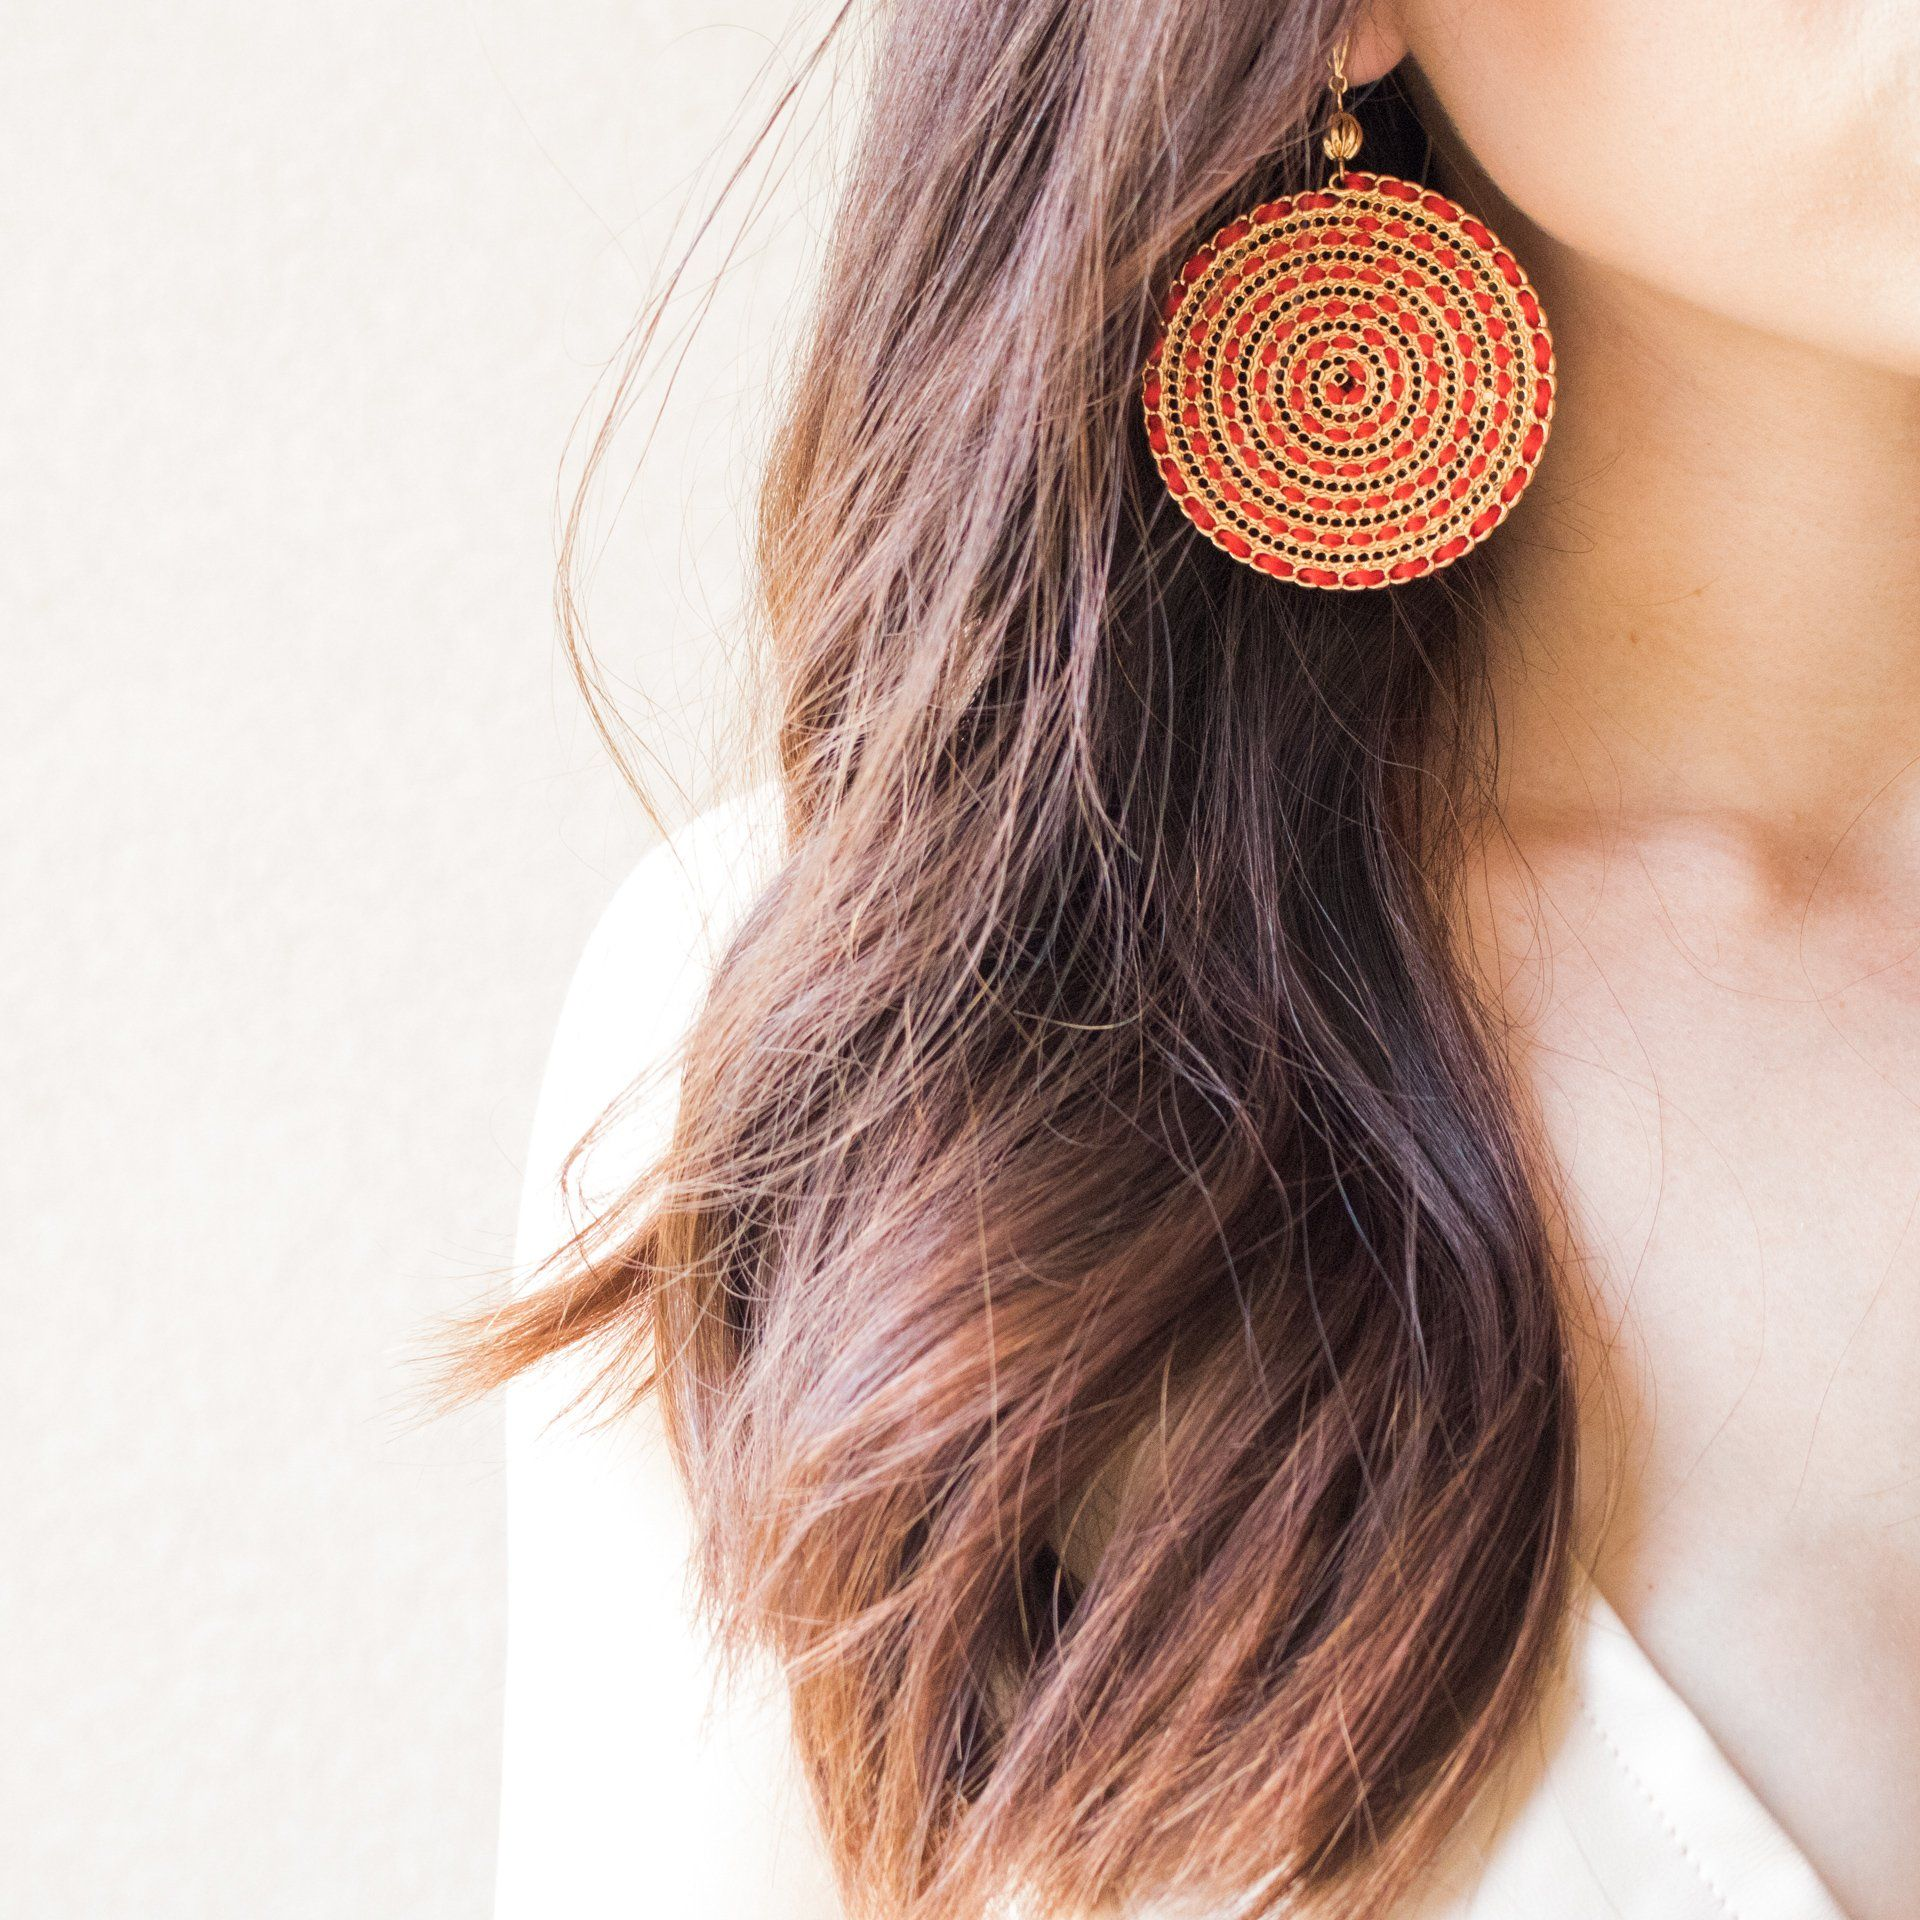 Believe in Magic Earrings in Red and Gold - Arlo and Arrows